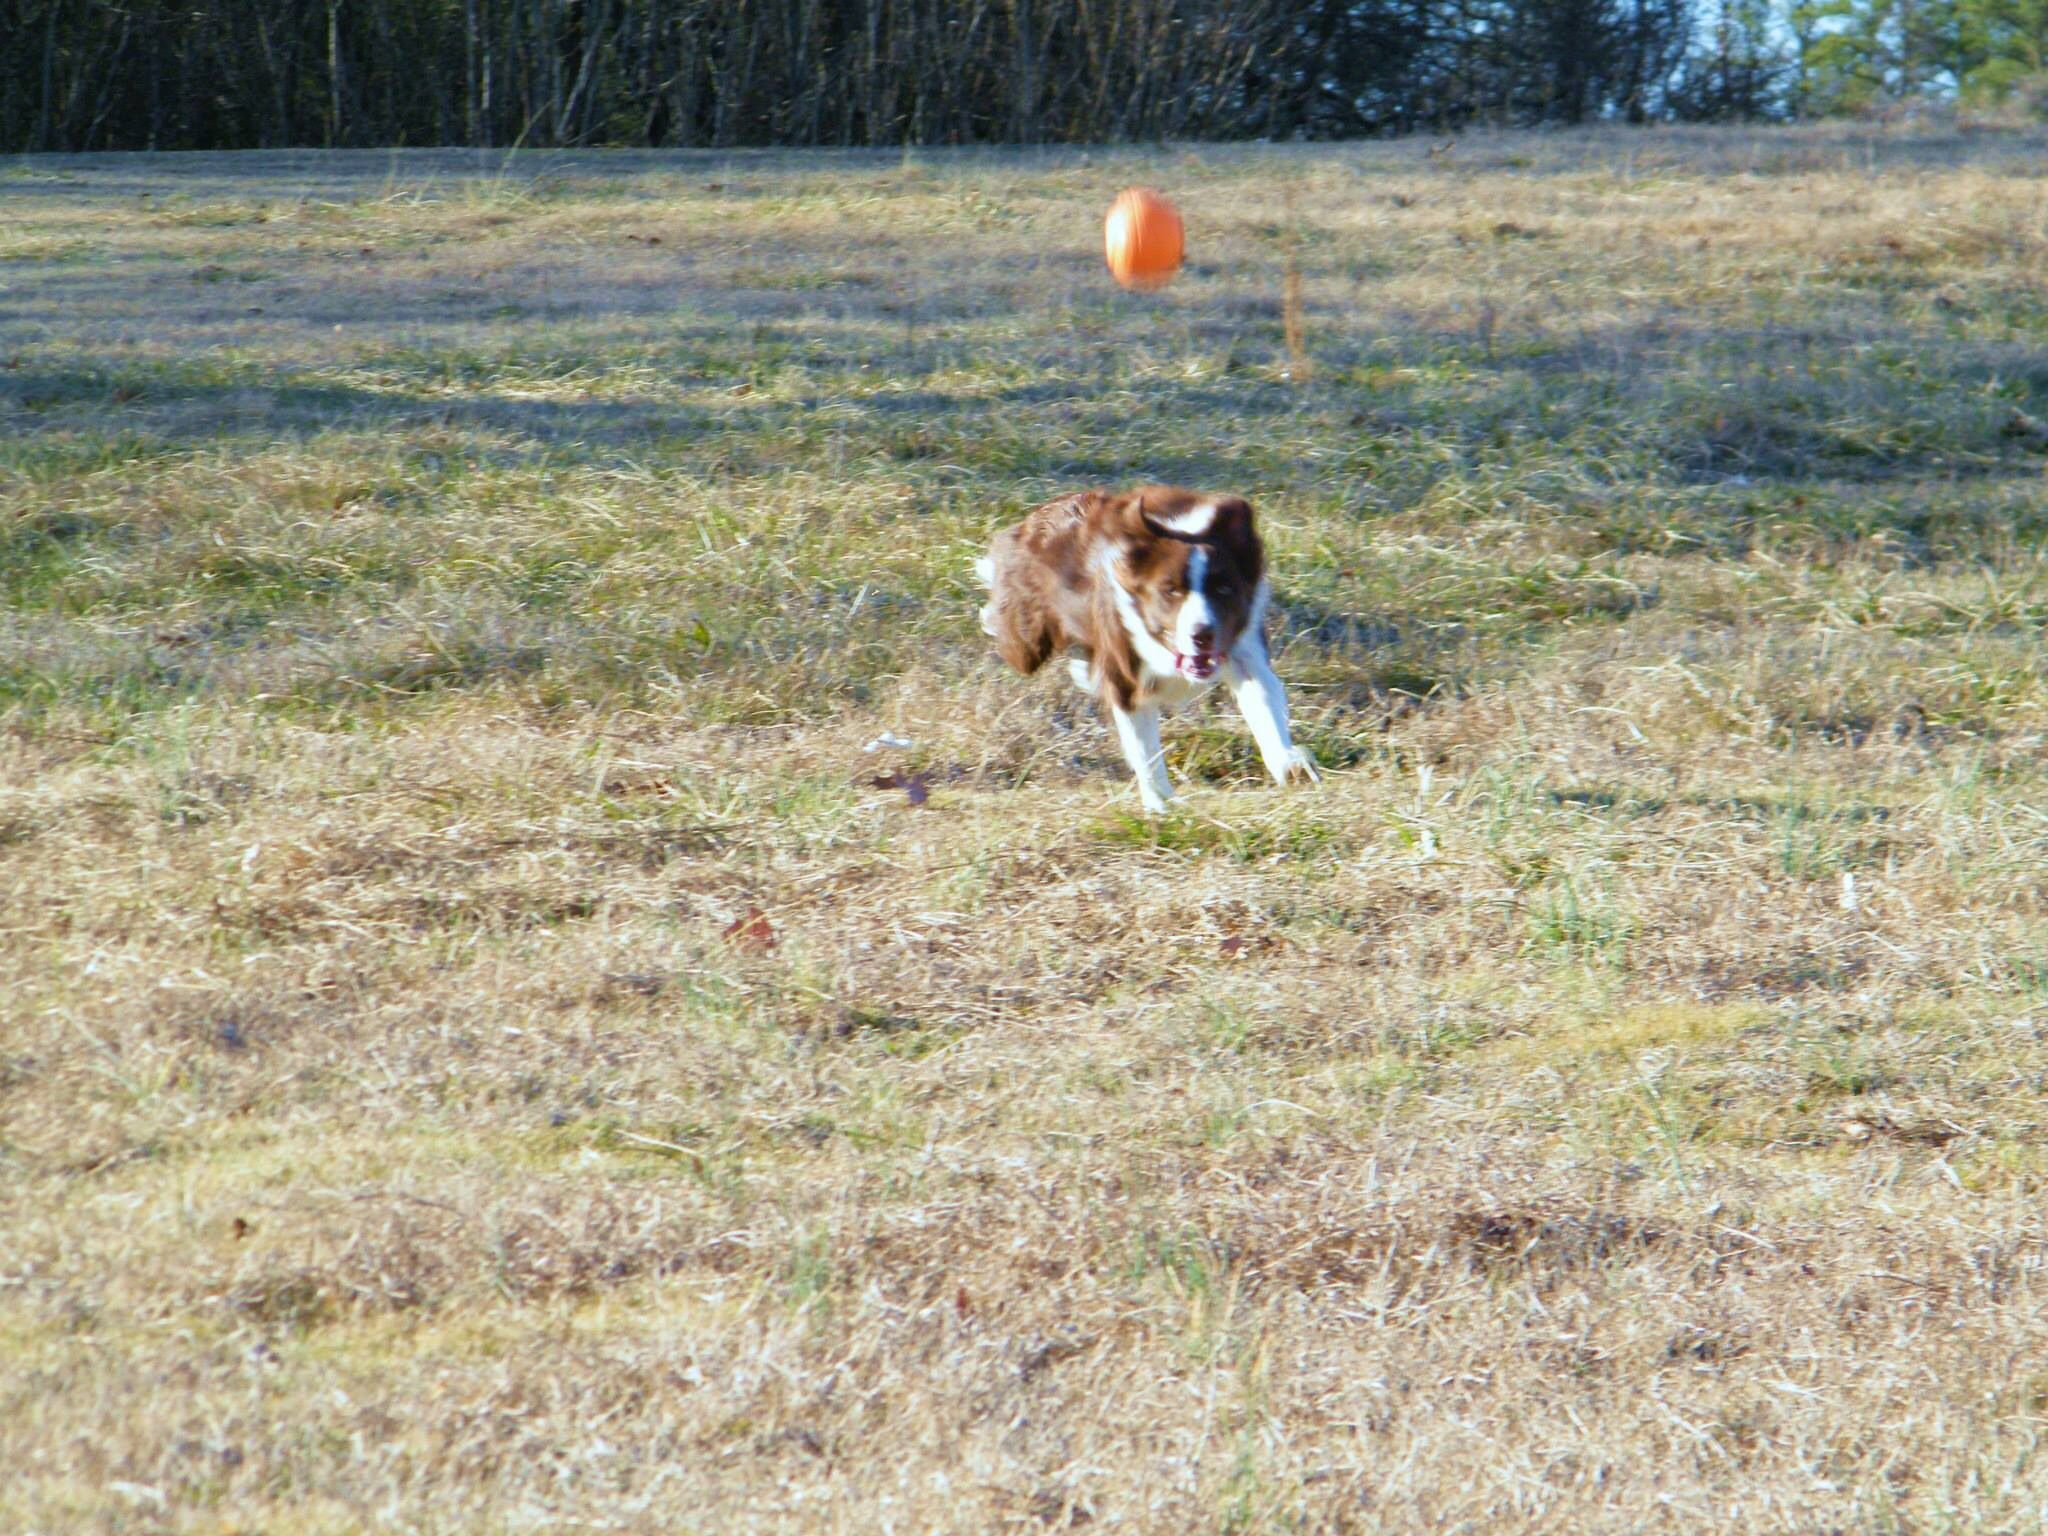 Piper about to catch the ball.